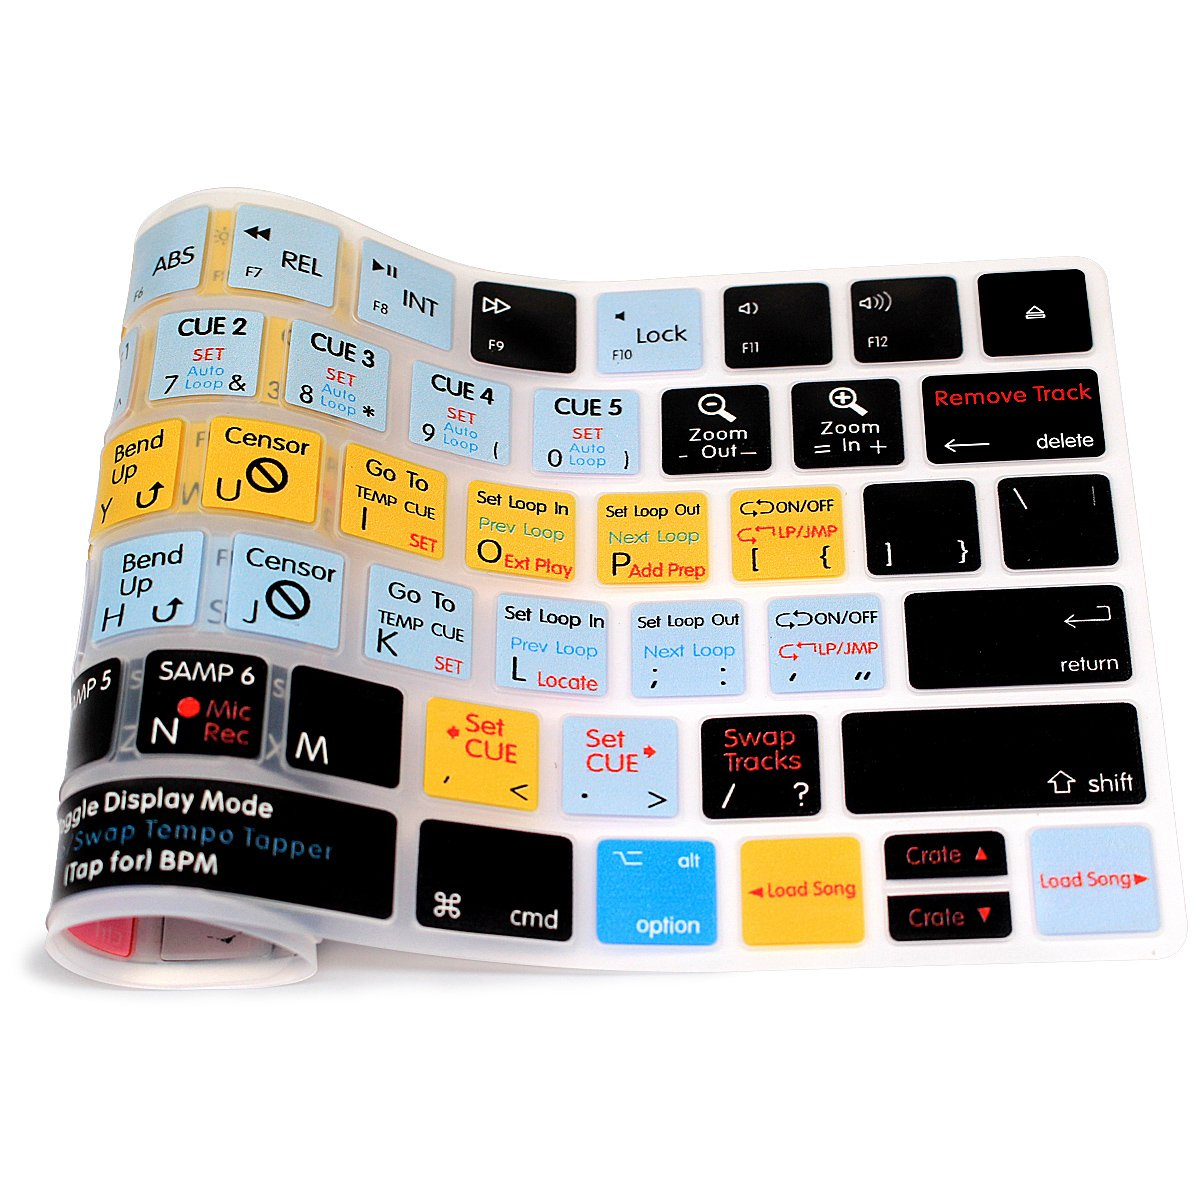 with US Layout HRH Adobe Premiere Pro CC Functional Shortcut Hotkey Keyboard Cover Silicone Skin for Apple Magic Keyboard MLA22LL//A